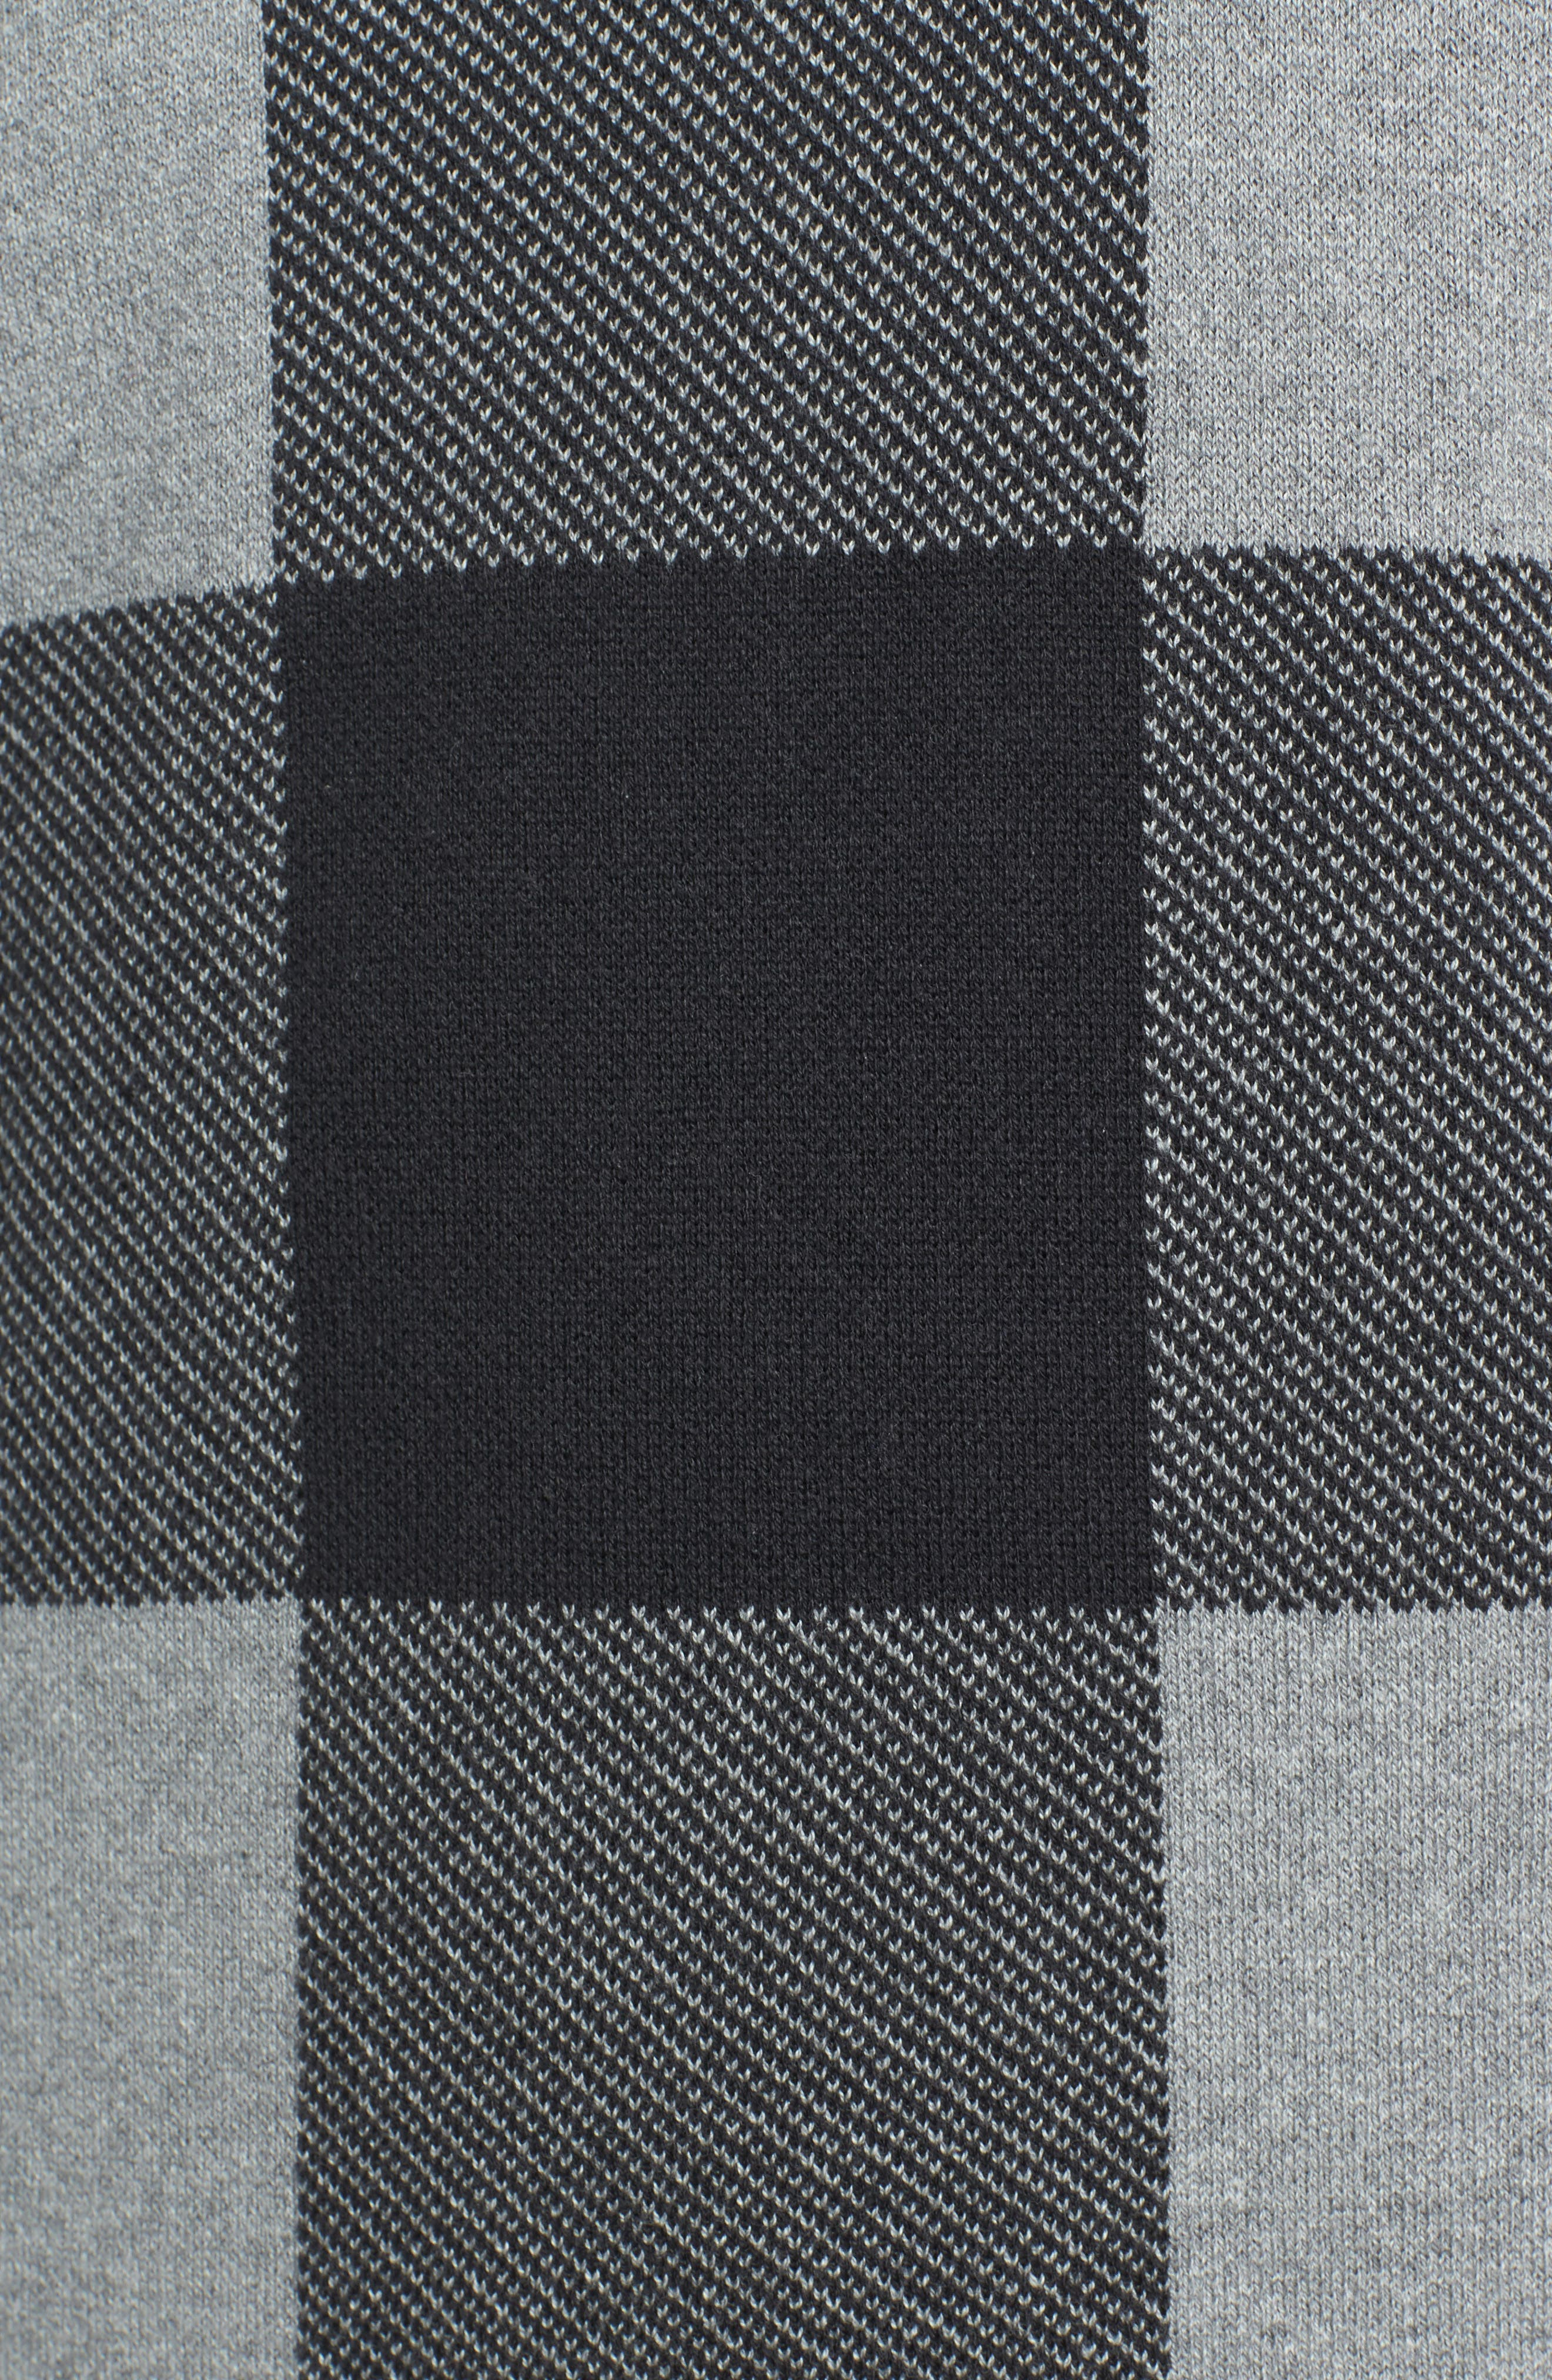 Oversize Buffalo Check Sweater,                             Alternate thumbnail 5, color,                             030